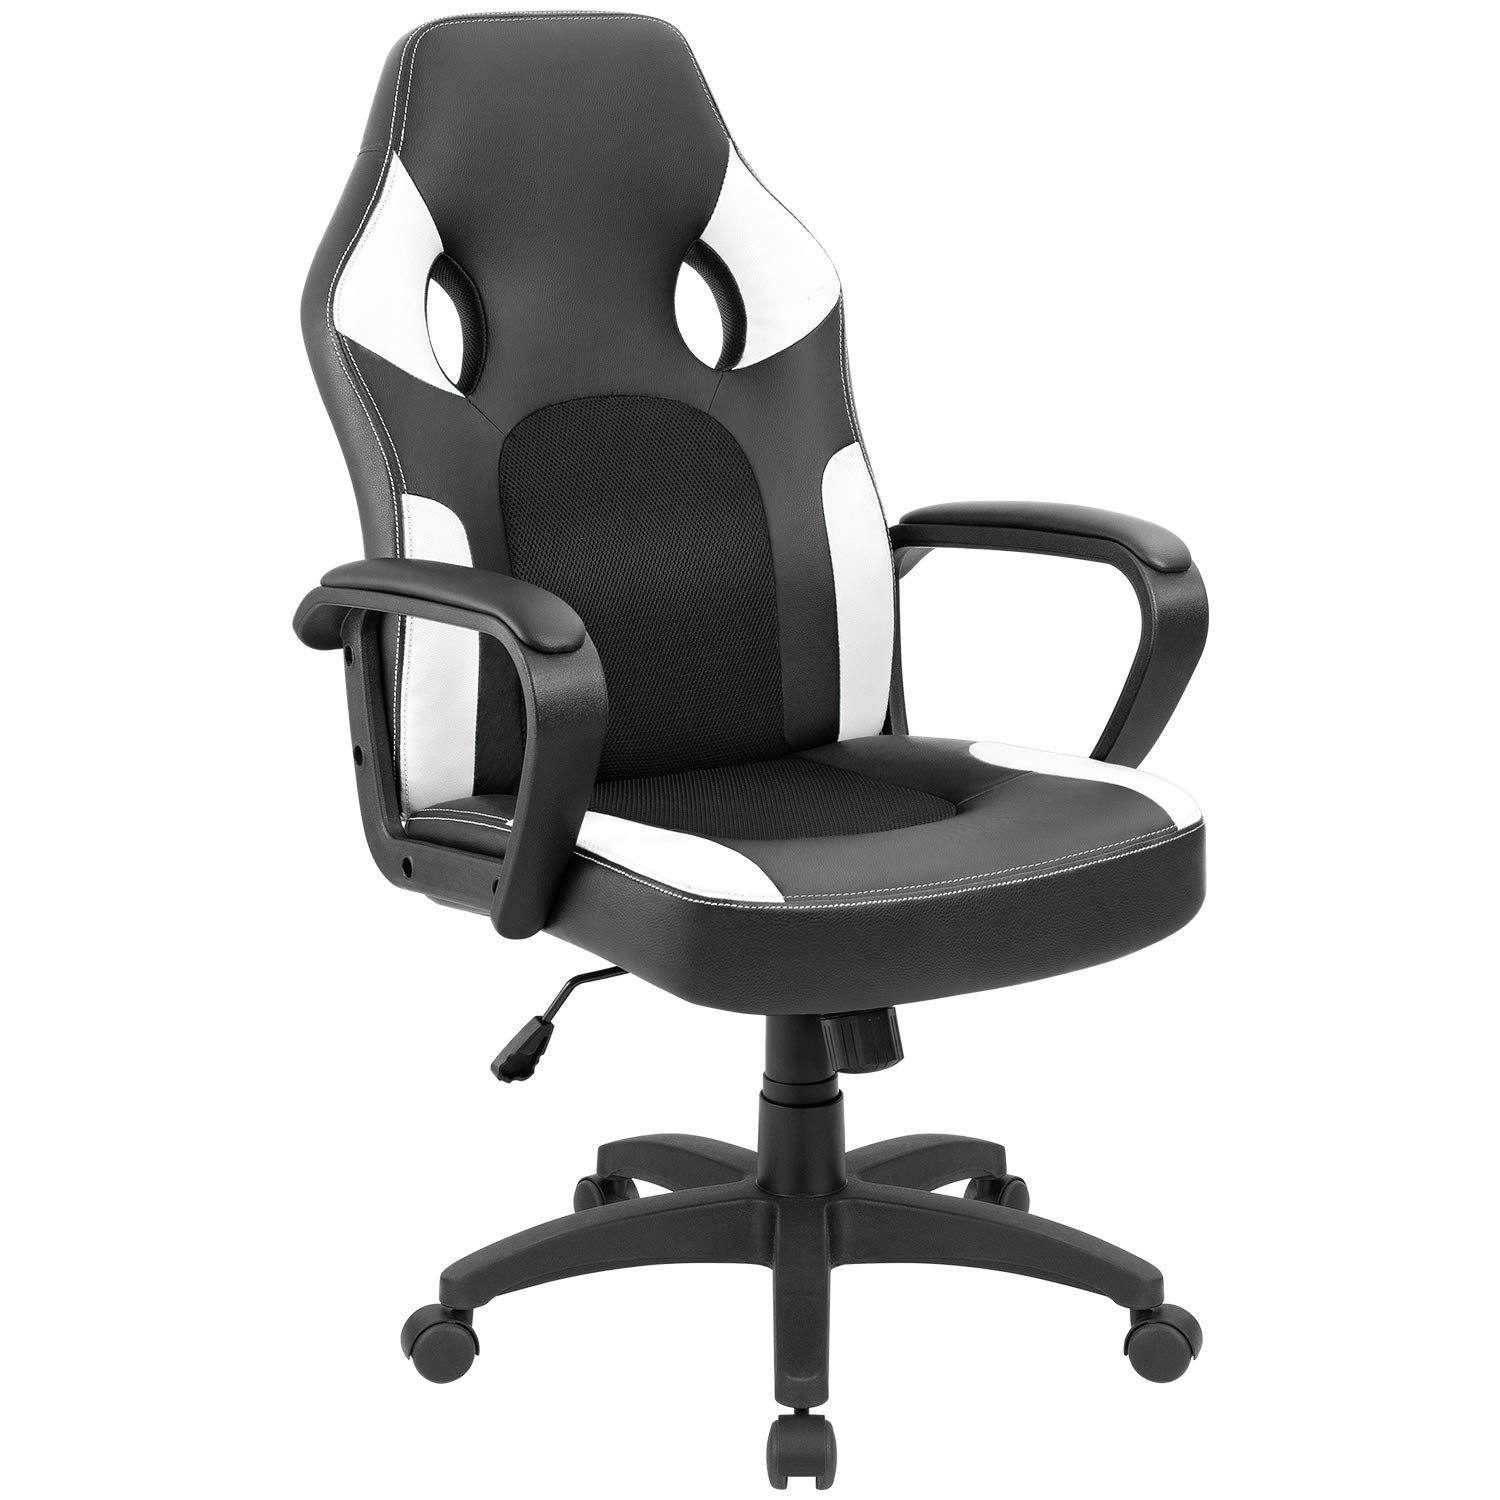 Furmax Office Chair Leather Desk Gaming Chair, High Back Ergonomic Adjustable Racing Chair,Task